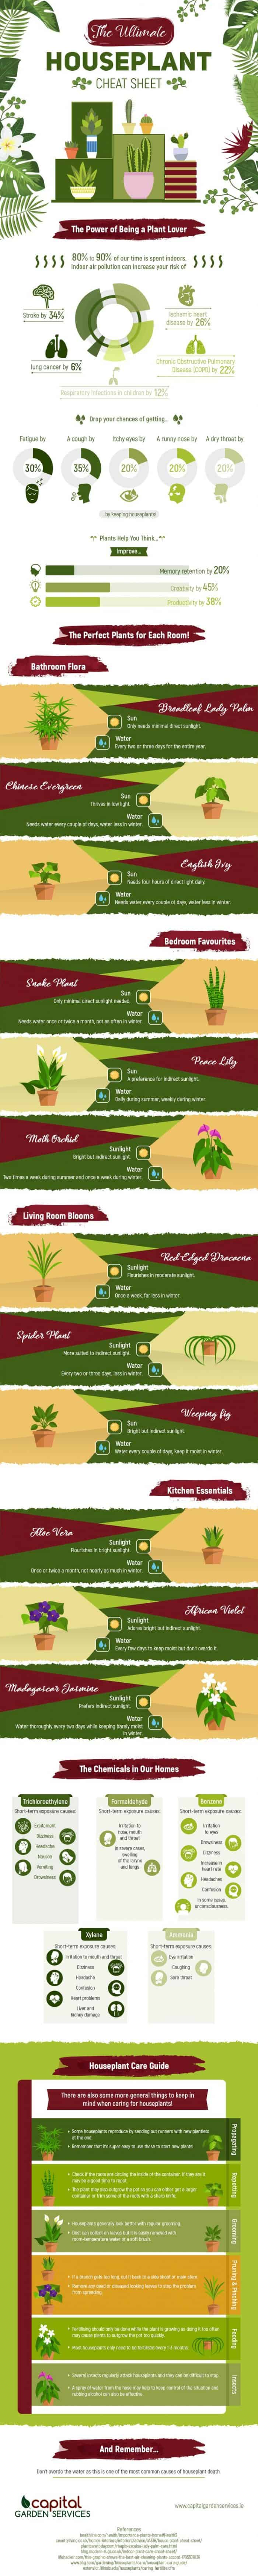 a list of types of houseplants, their benefits, and how to take care of them